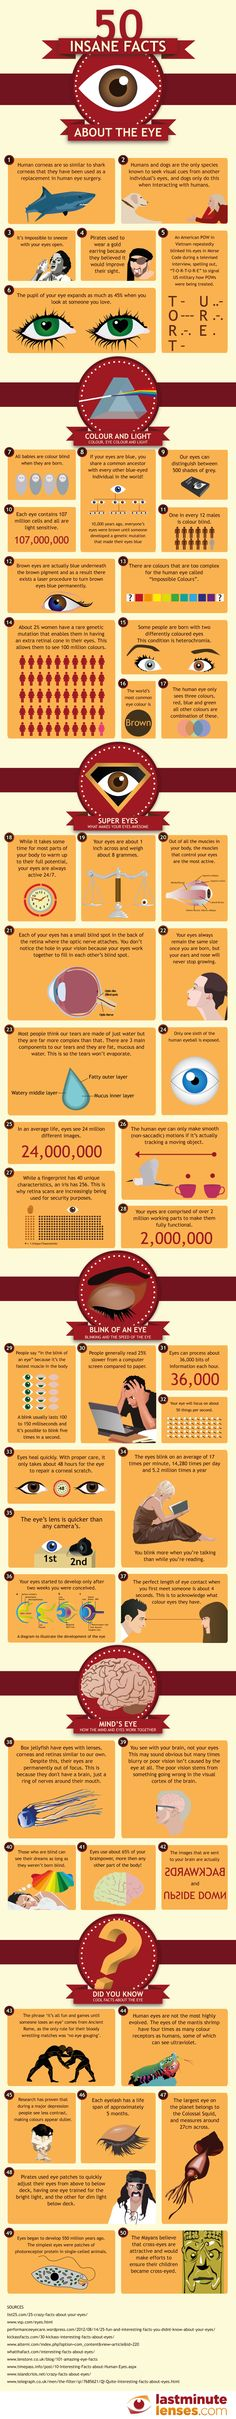 Insane Facts About The Eye  #Infographic #Eye #Facts L'Optique Optometry www.loptiqueoptometry.com 248-656-5055 6822 N. Rochester Rd, Rochester Hills MI